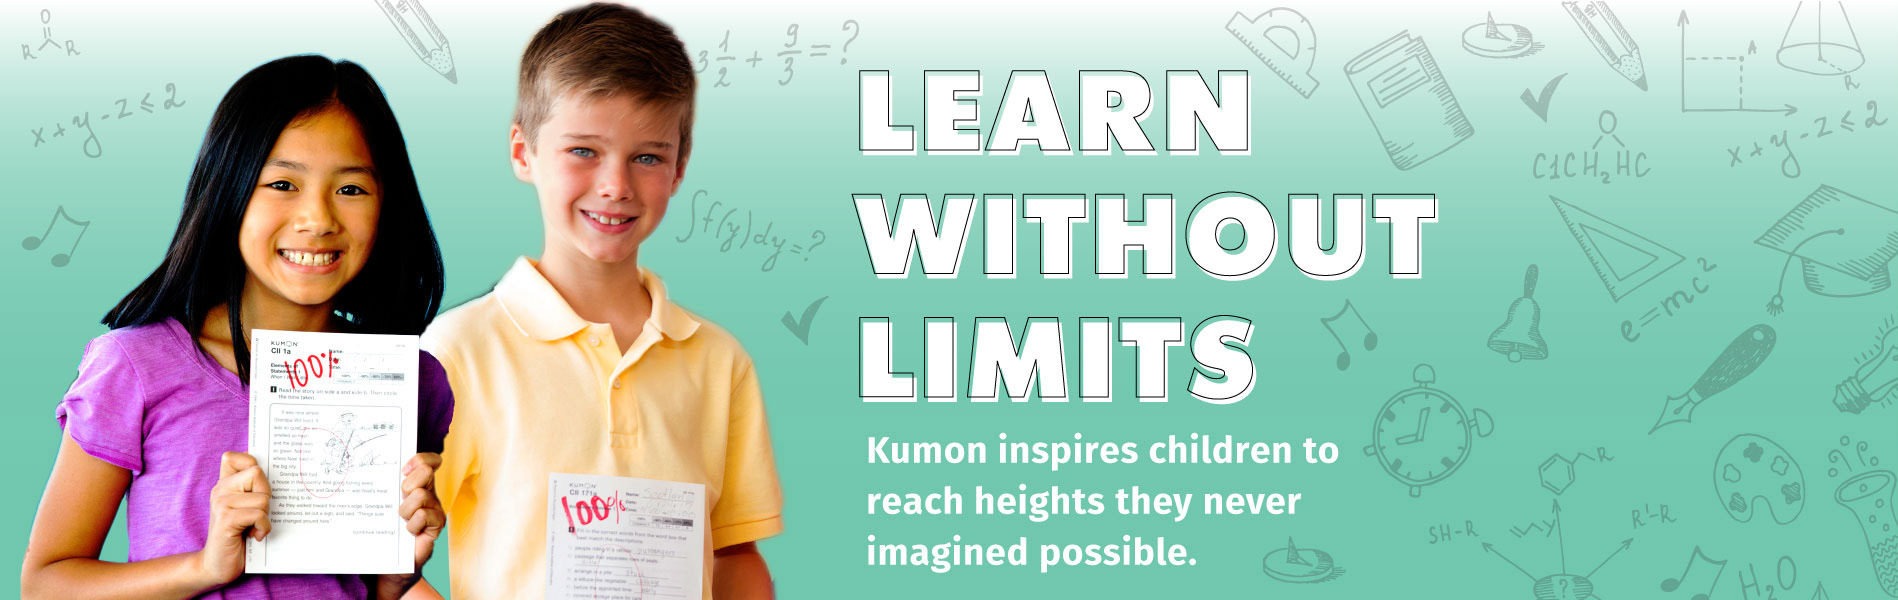 Learn without limits